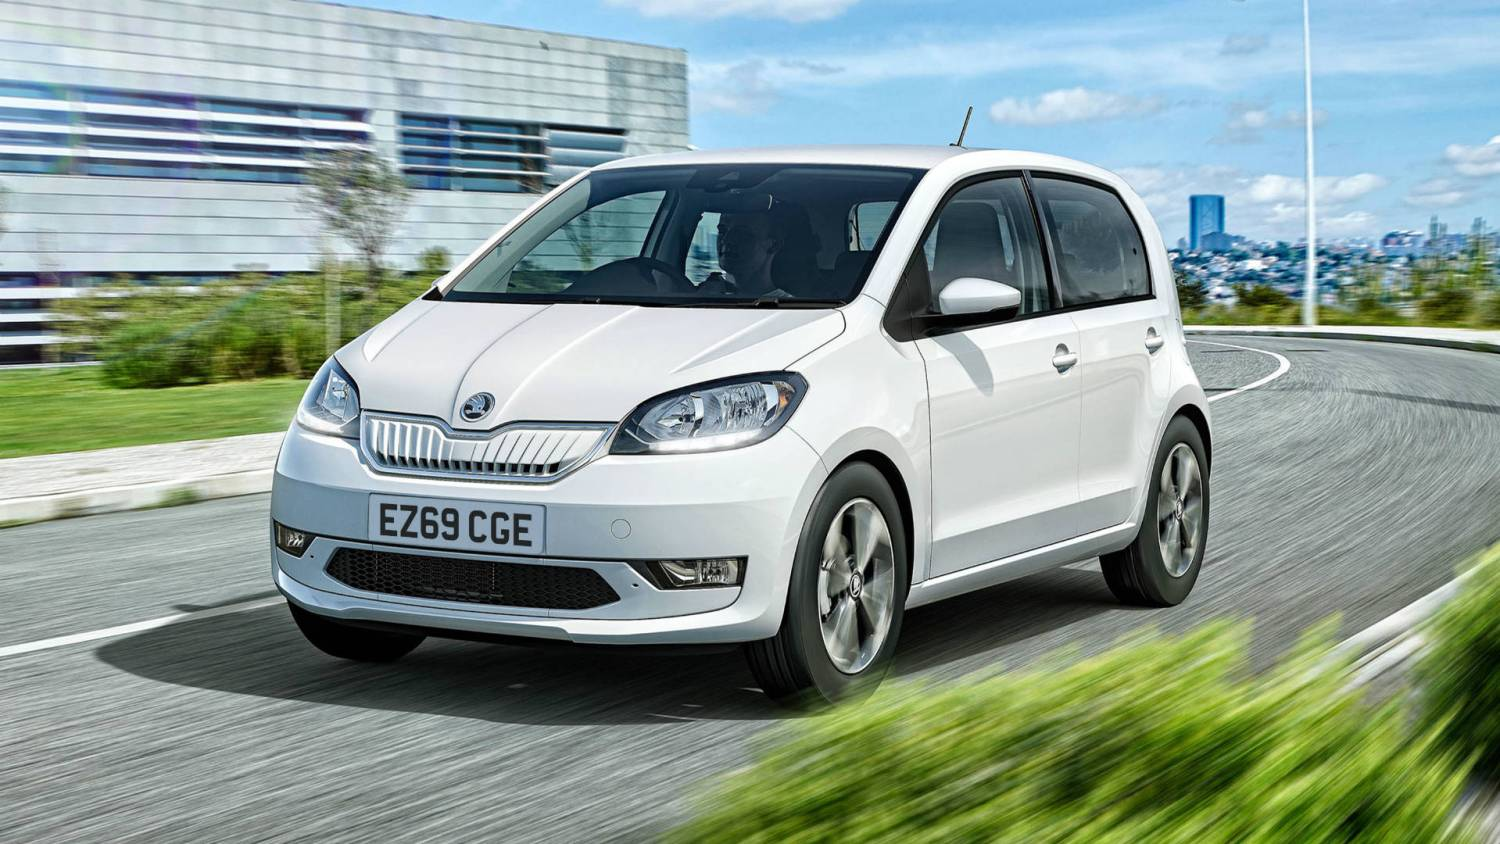 Skoda Citigo e IV electric car